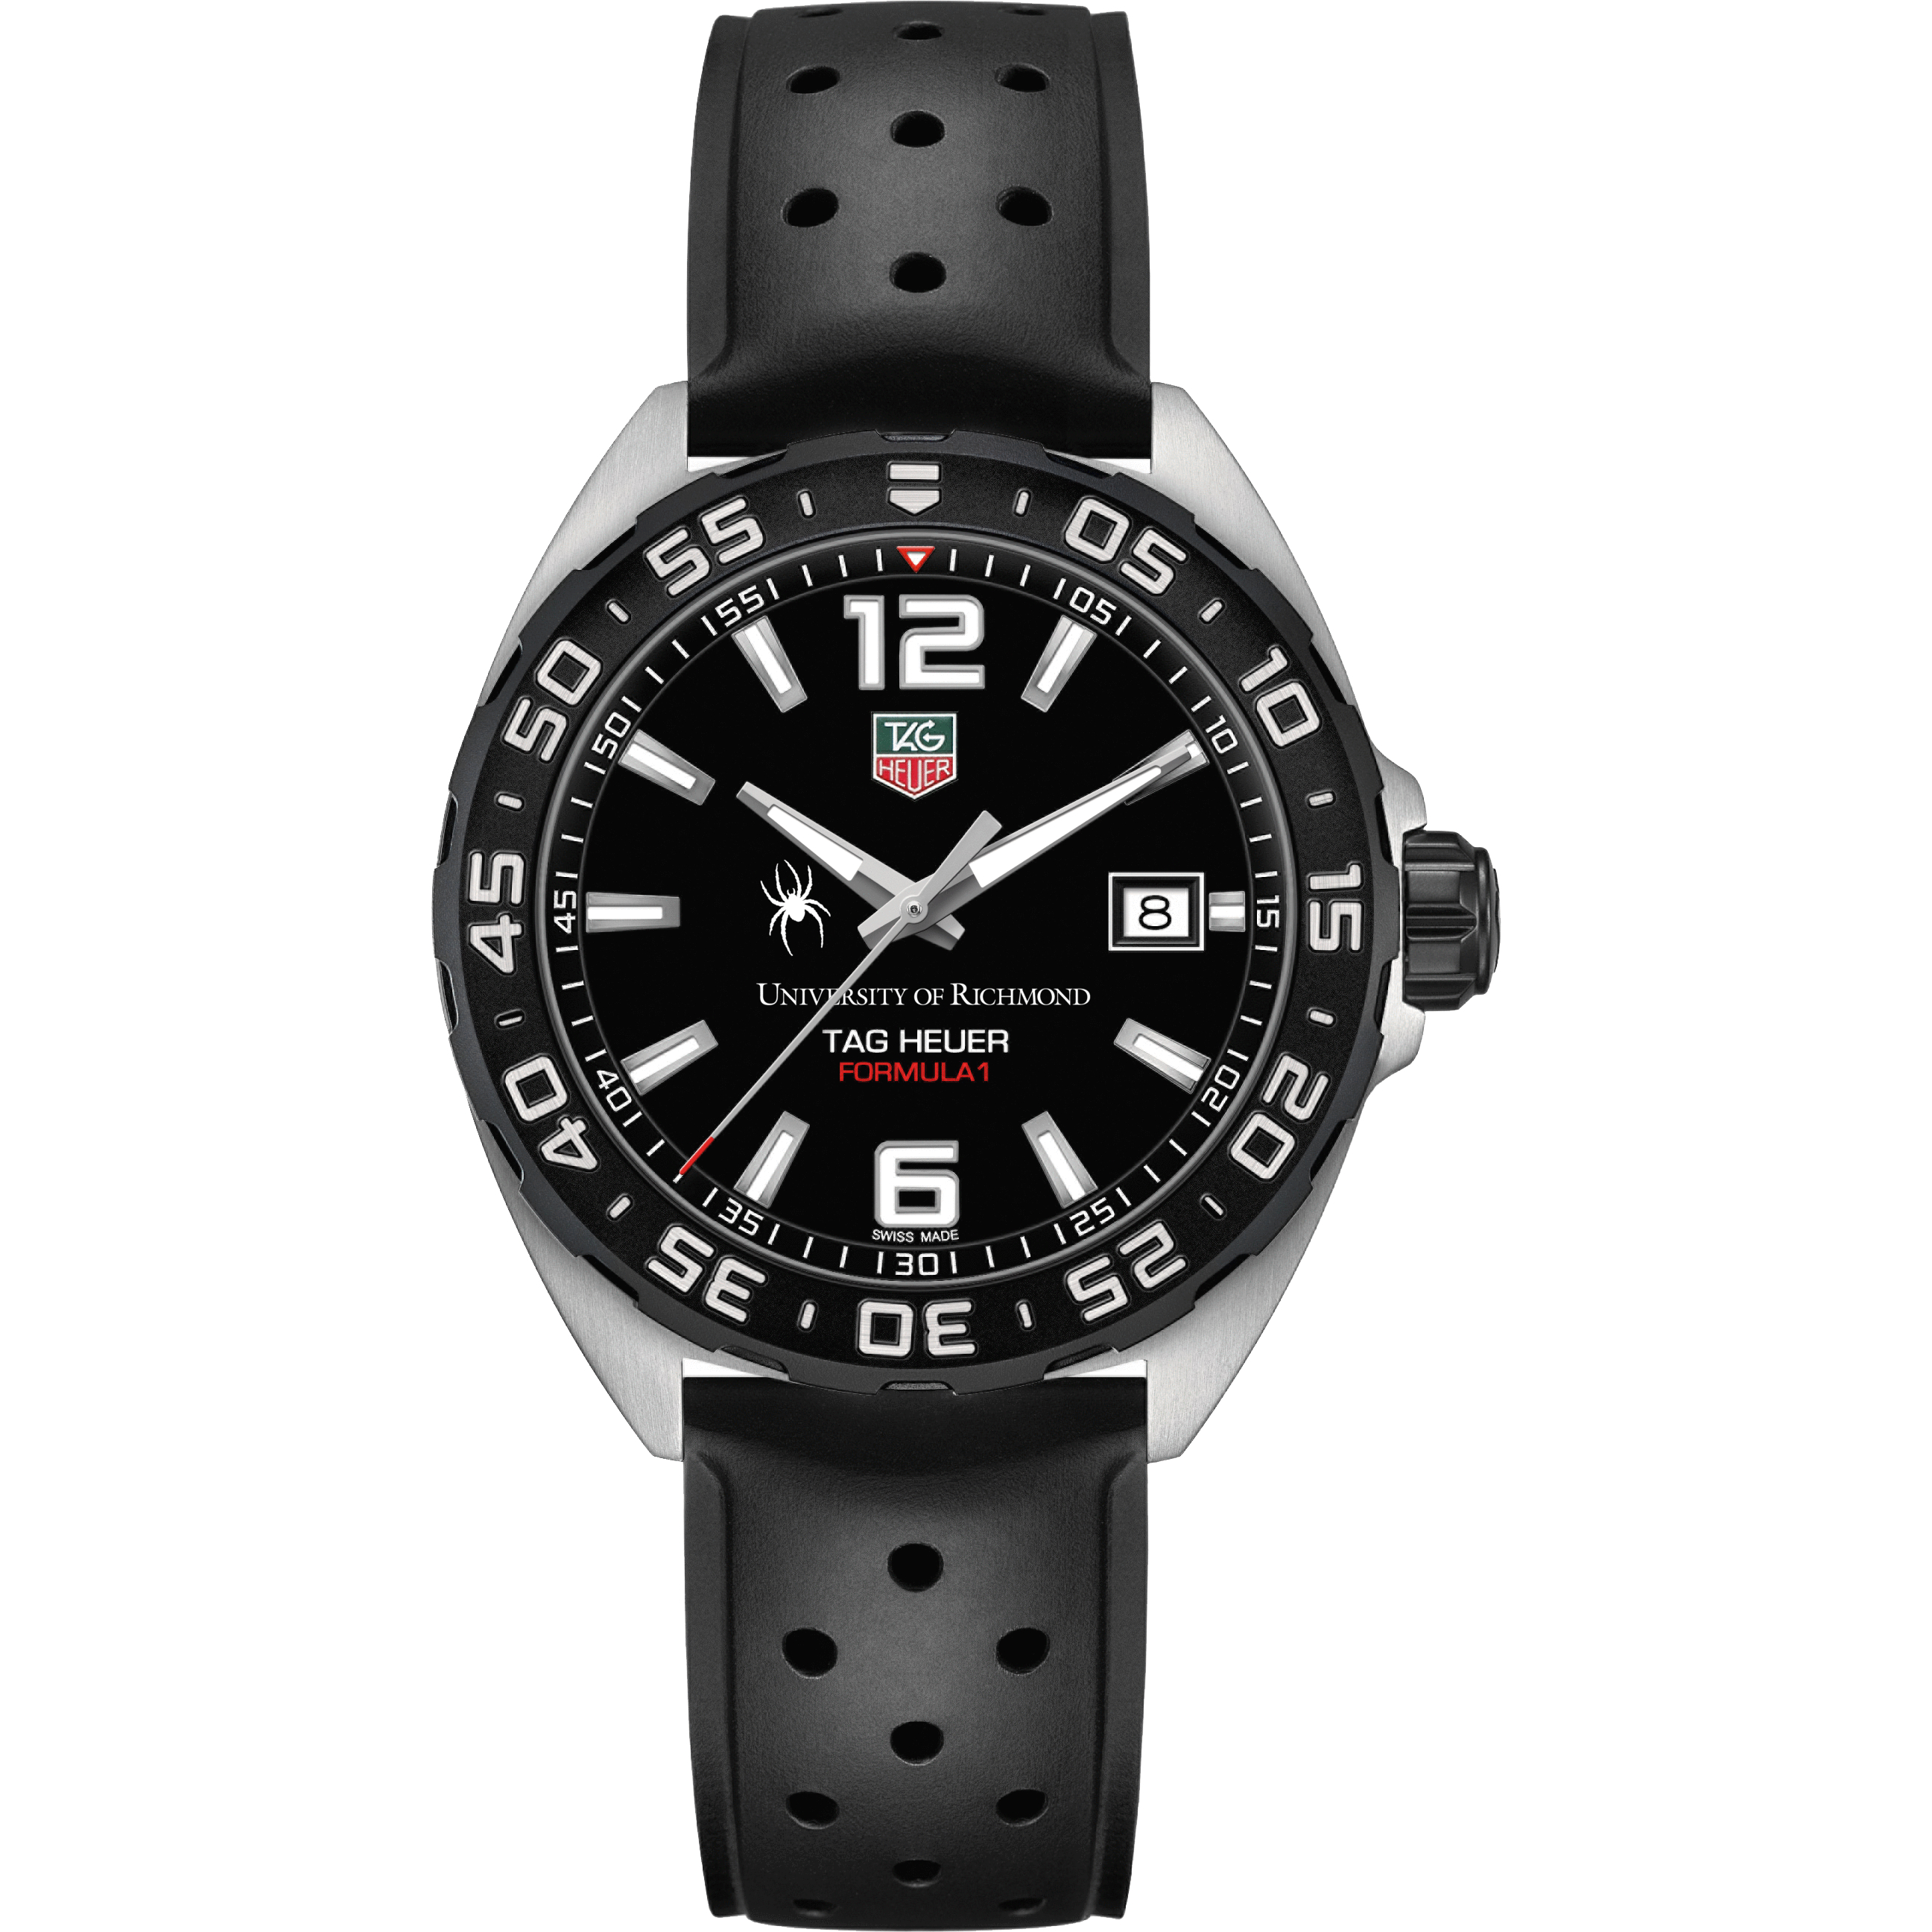 University of Richmond Men's TAG Heuer Formula 1 with Black Dial - Image 2